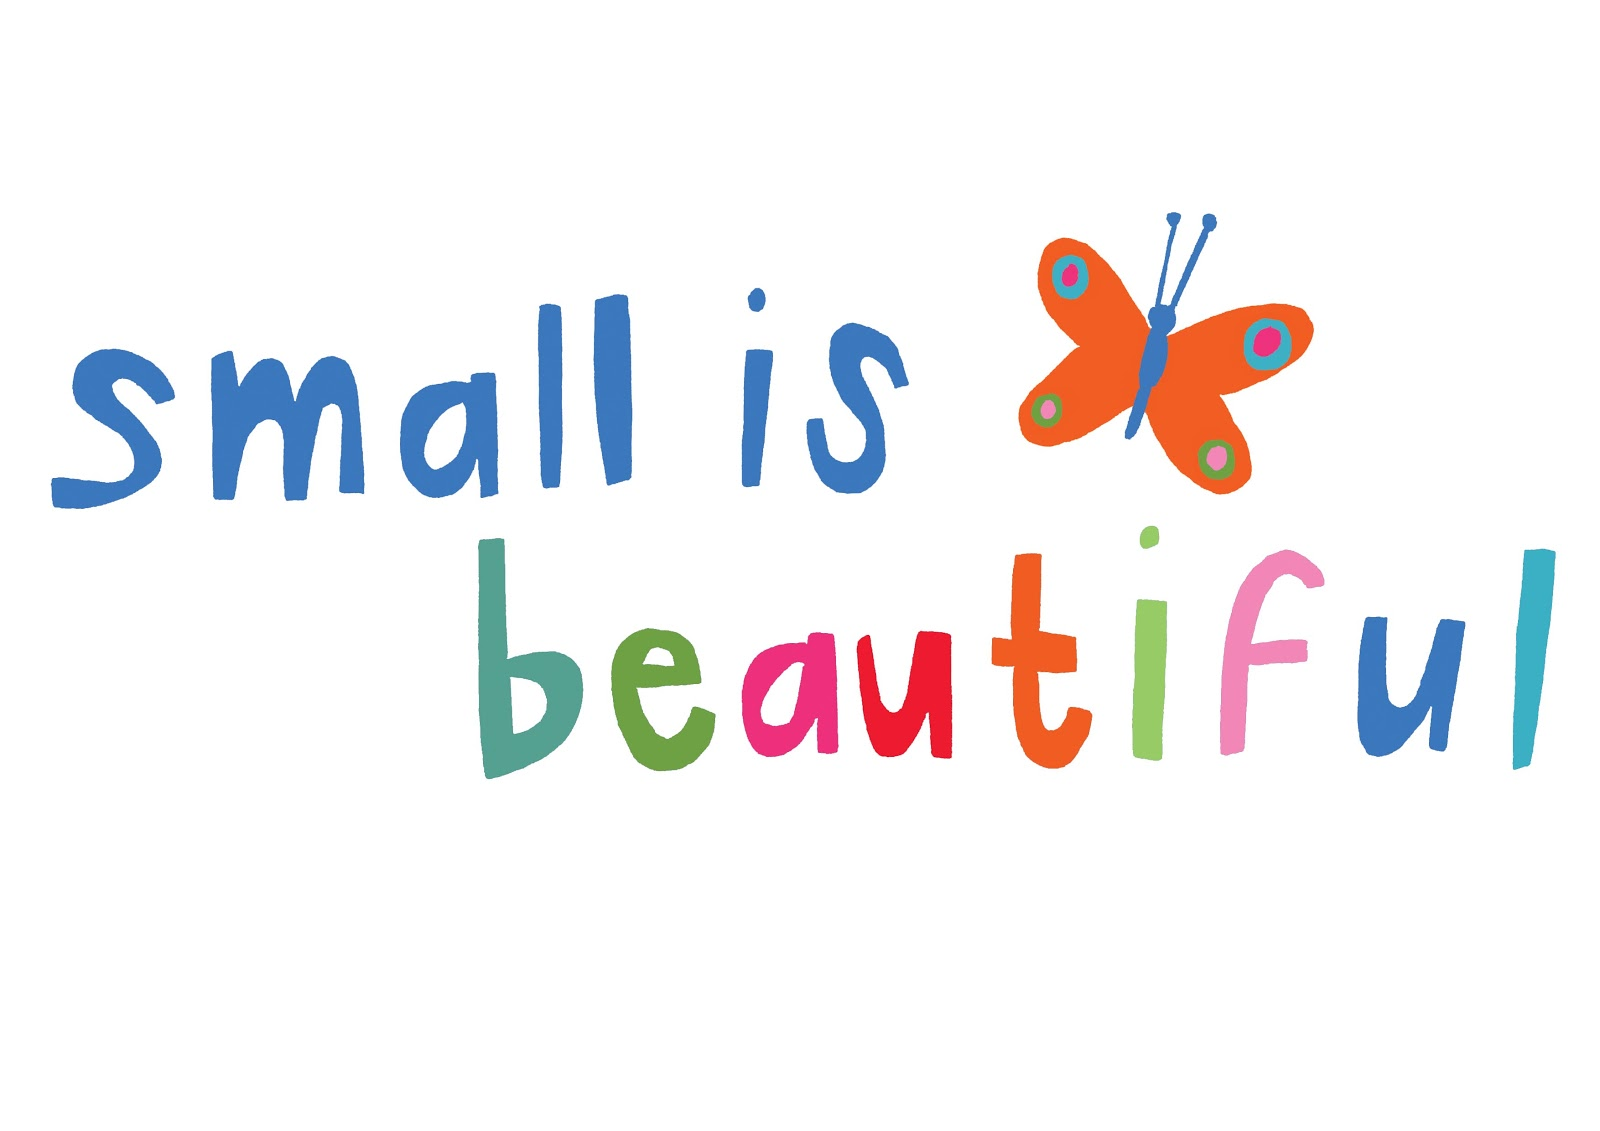 Small is Beautiful: http://hannah-broadway-pictures.blogspot.com/2011/01/small-is-beautiful.html